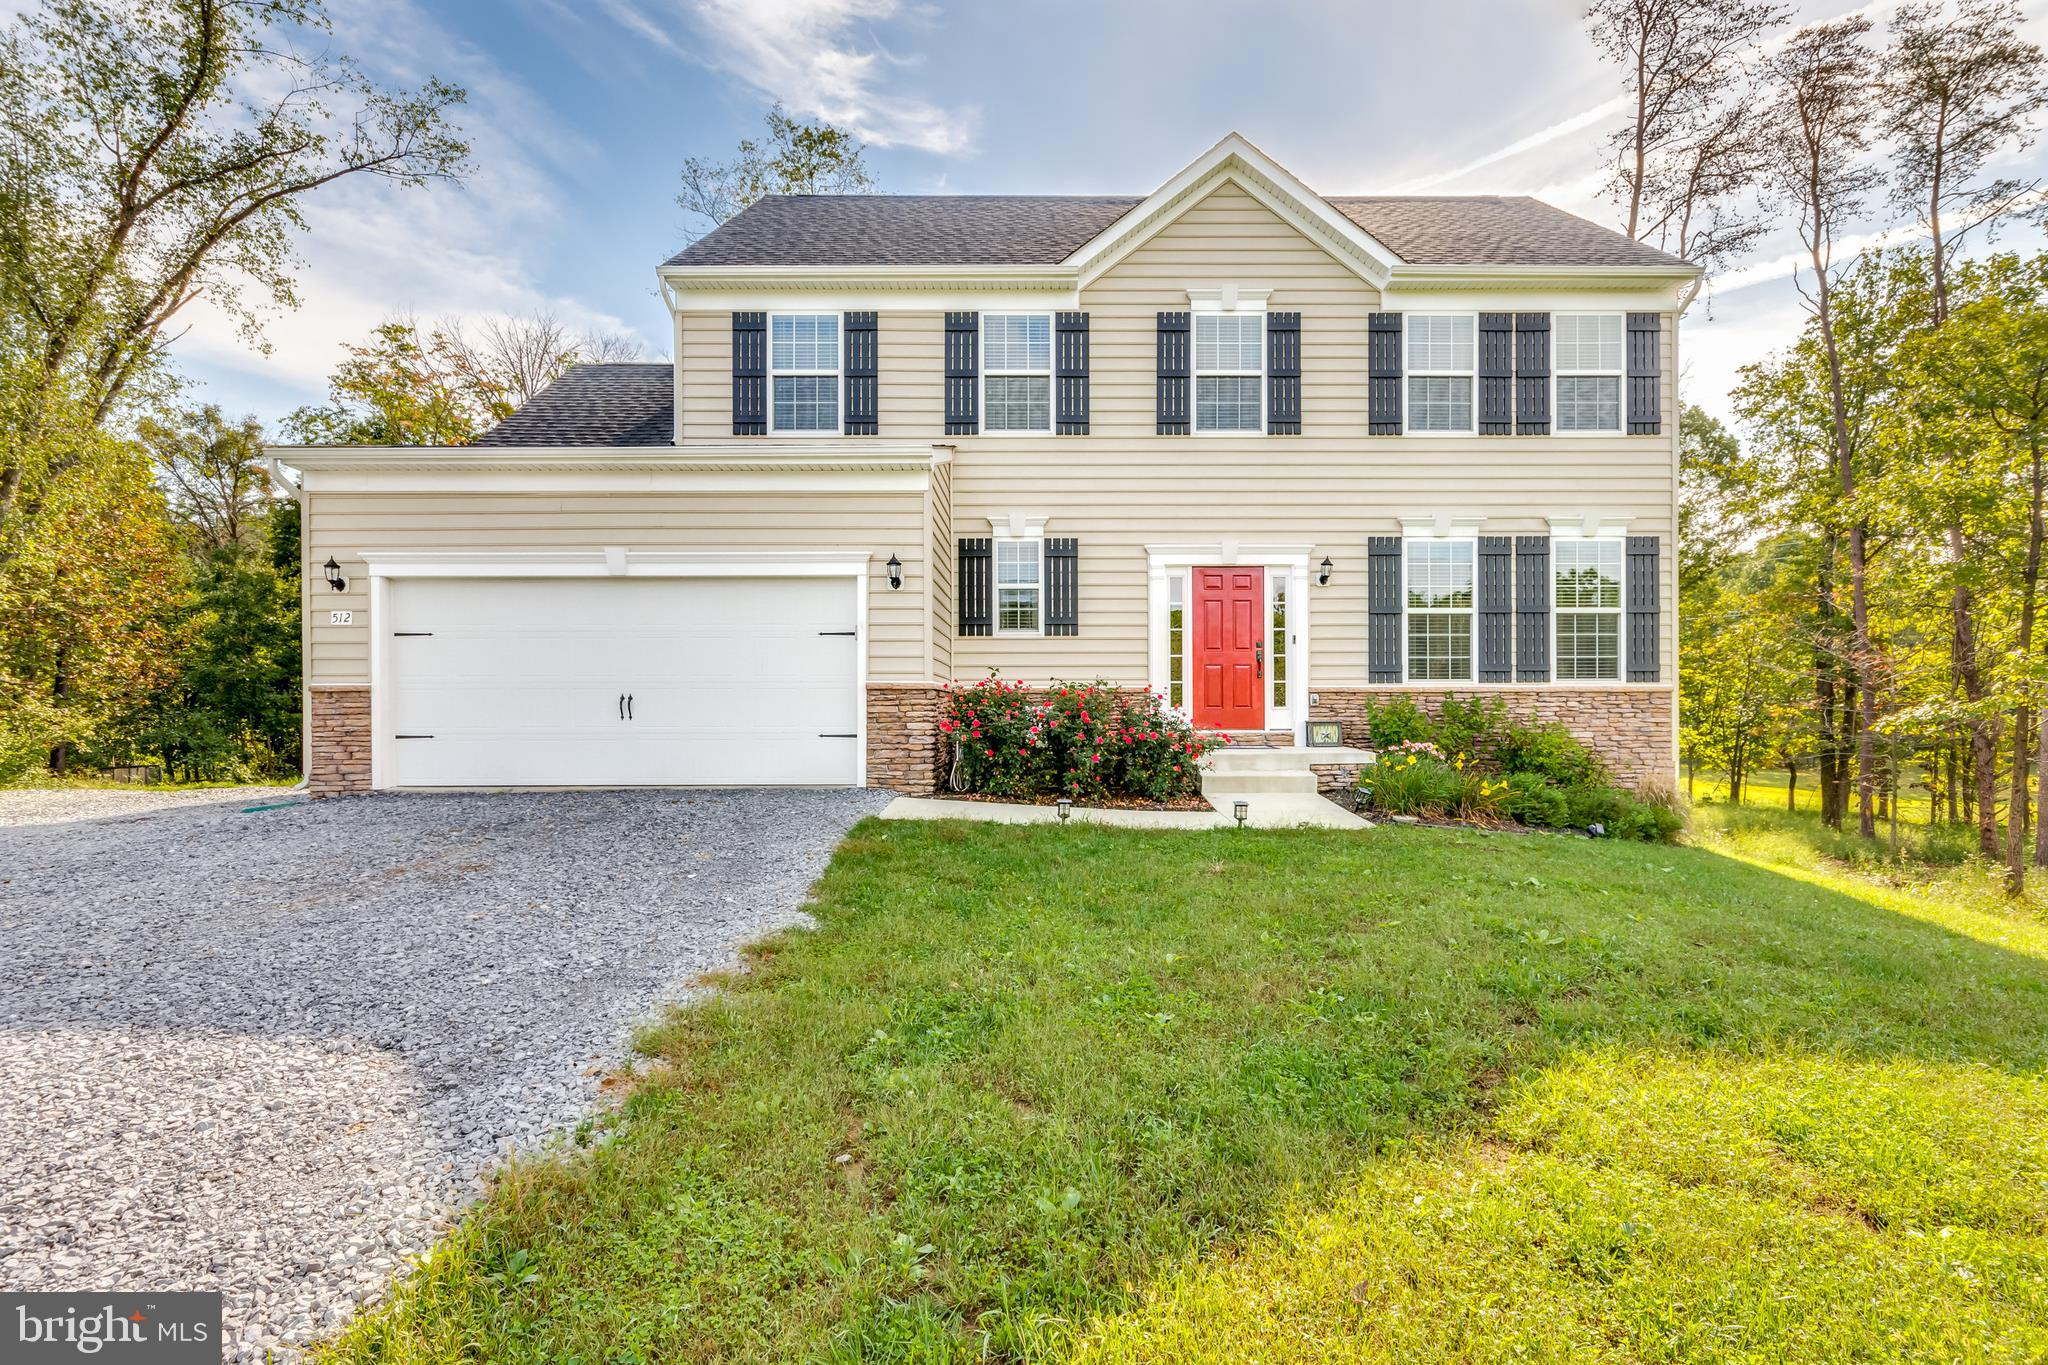 Welcome Home! Beautiful 4 bedroom, 2.5 bath Colonial on a private 2 acre+ lot is everything you want